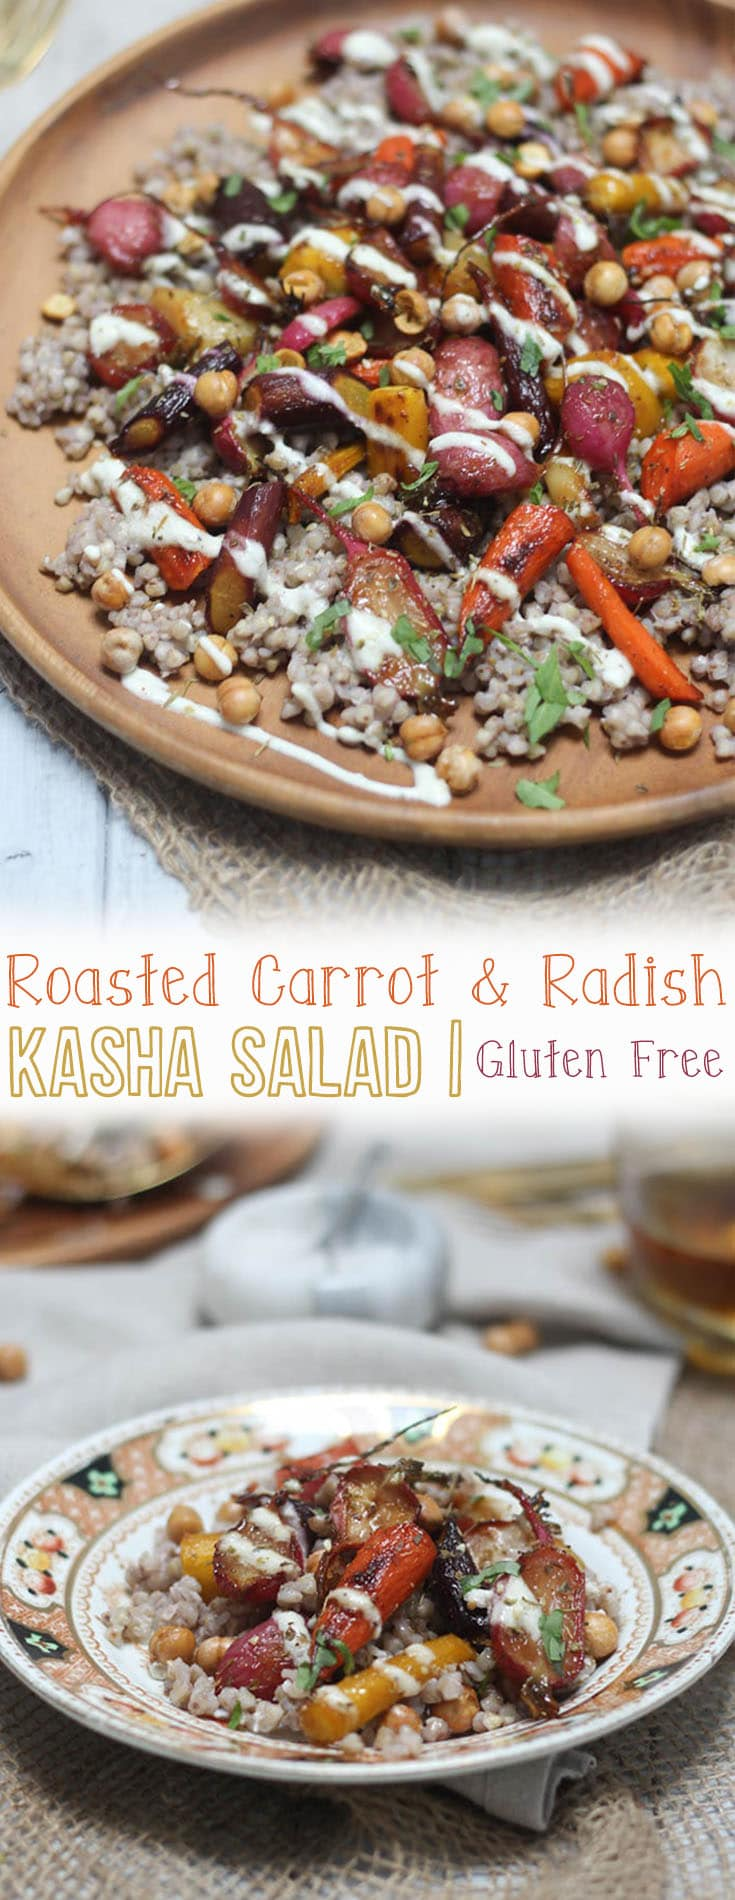 ThisGluten Free Roasted Carrot and Radish Kasha Salad with Crispy Chickpeas is an elegant side dish for entertaining, yet surprisingly simple enough to pull off for a weeknight meal.